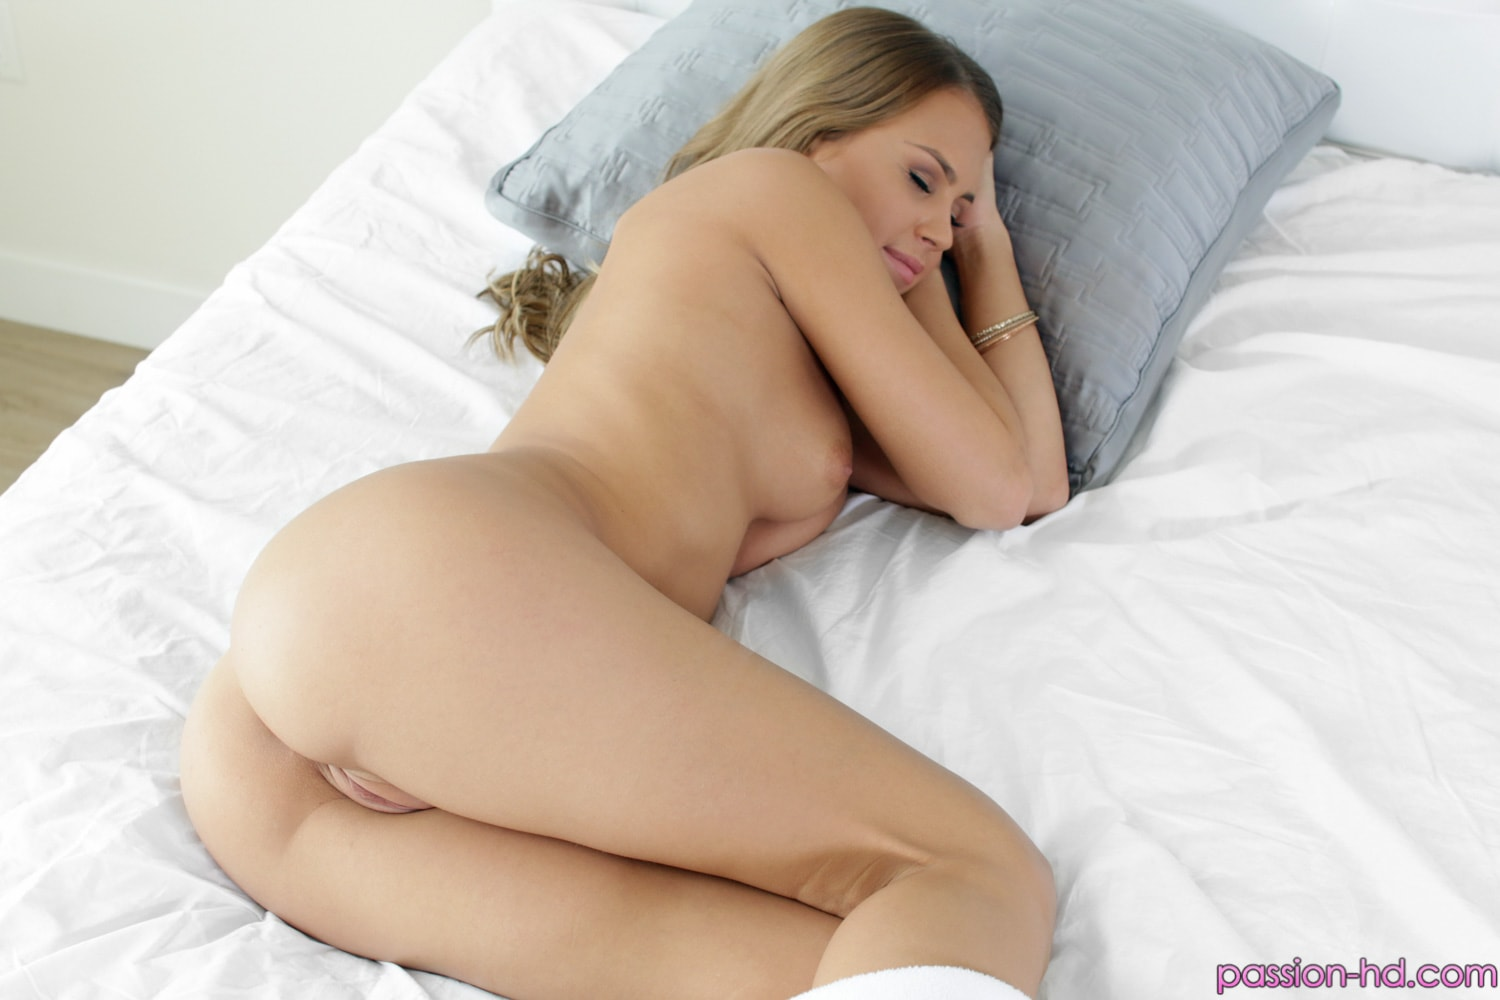 Passion HD 'Pussy Lover' starring Kendall Kayden (Photo 5)